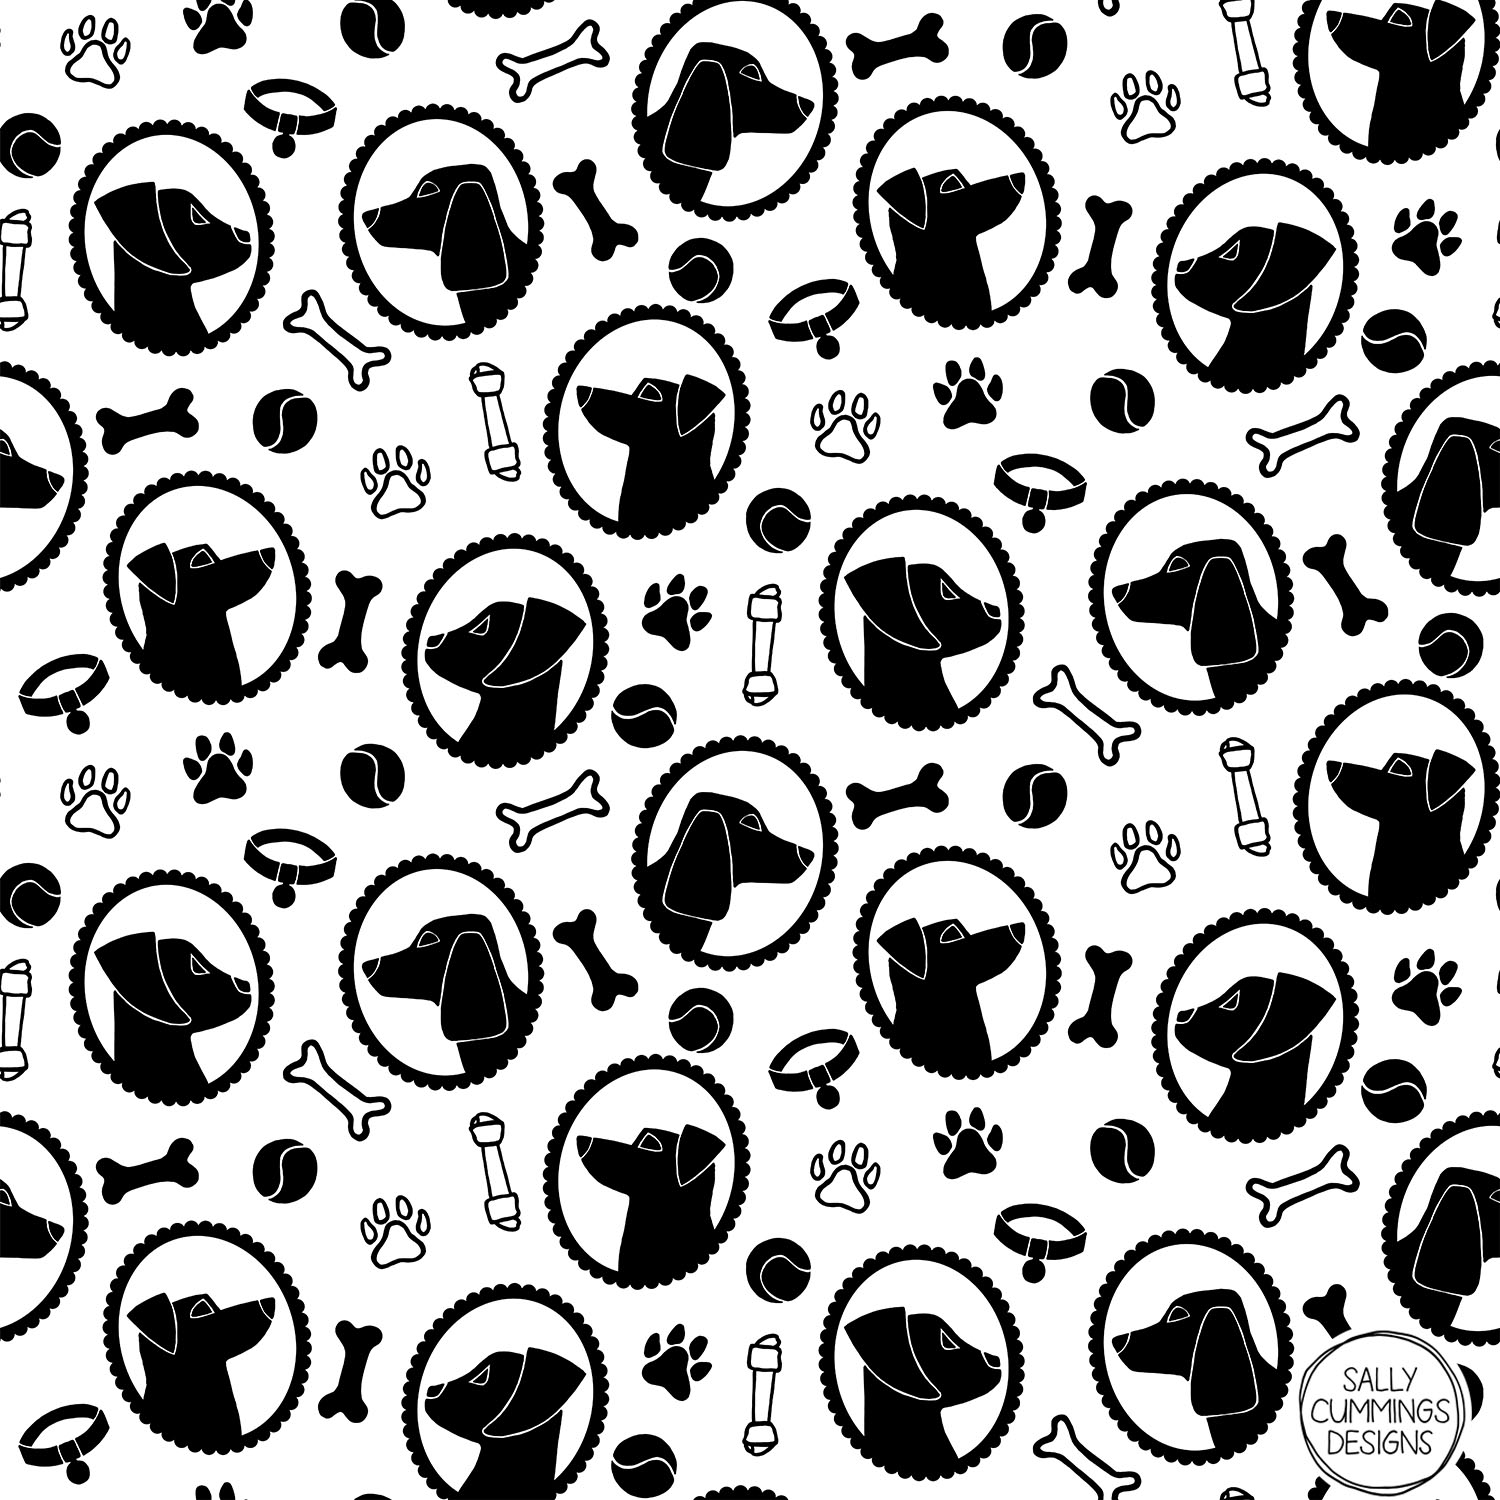 Sally Cummings Designs - Dog Cameos Pattern Monochrome